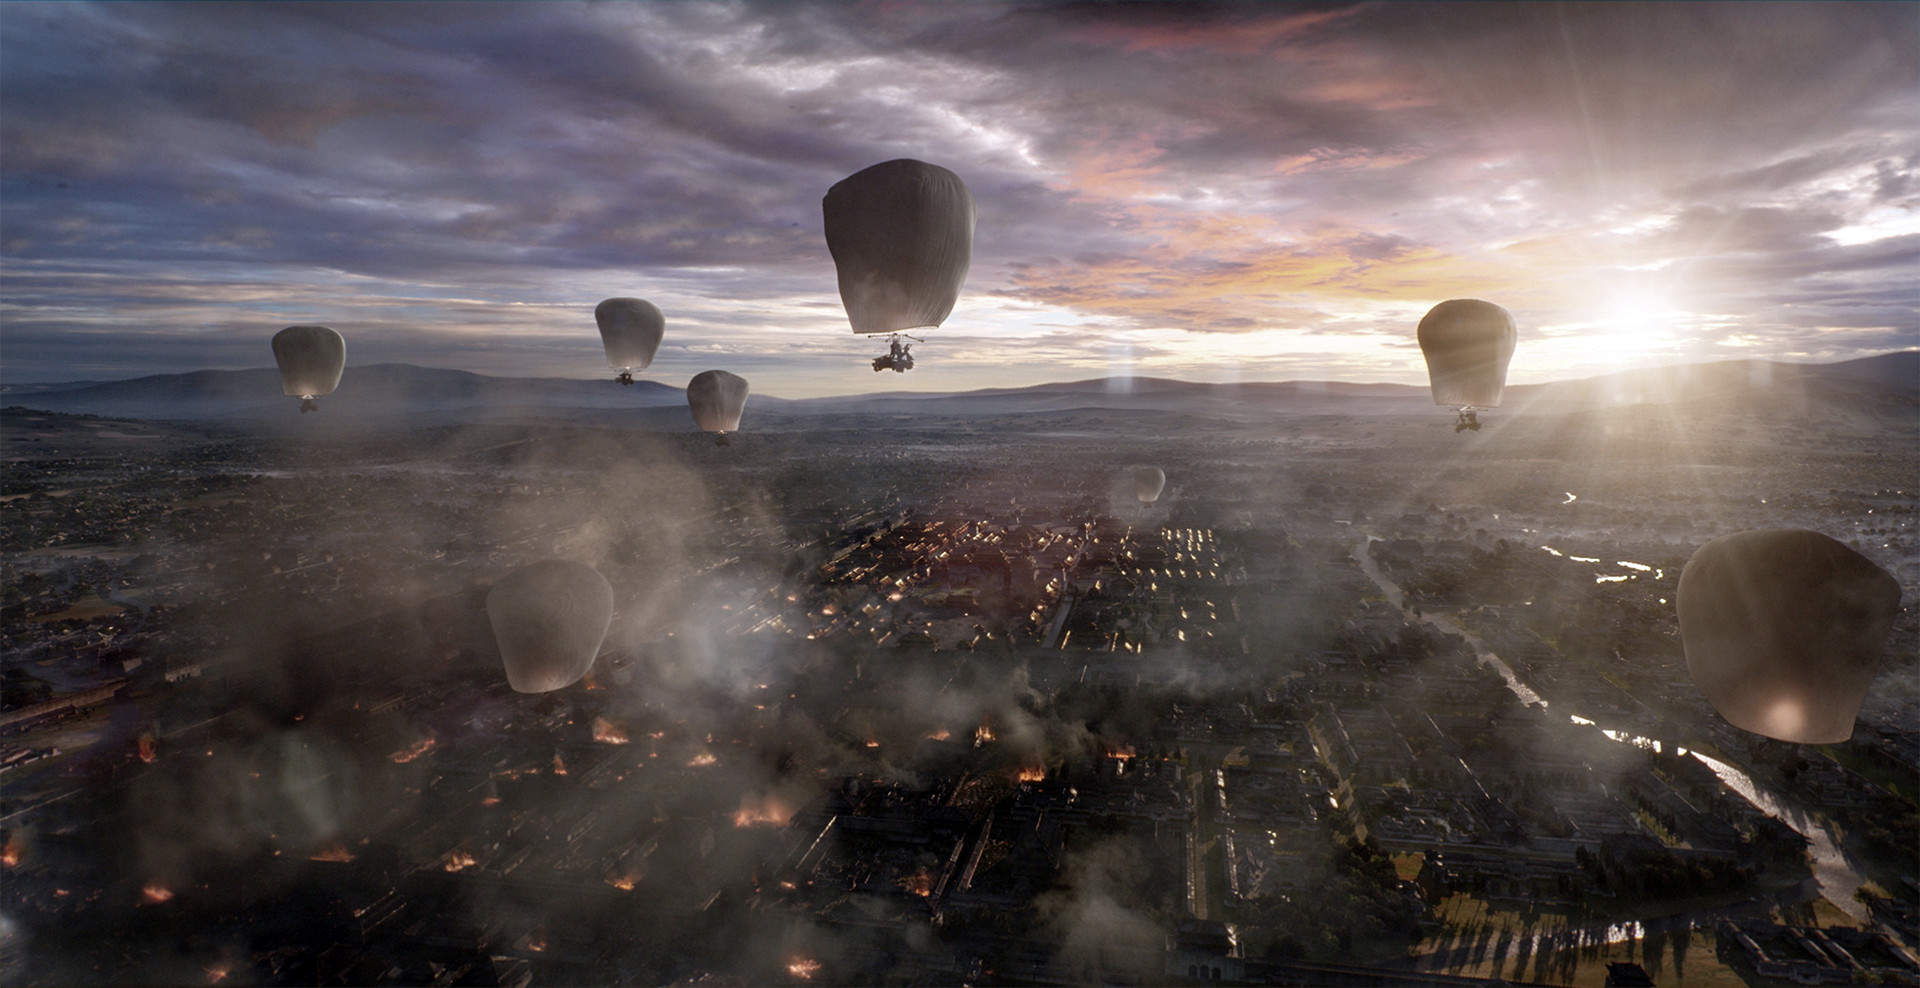 Flight of the balloons squadrons in The Great Wall (2016)